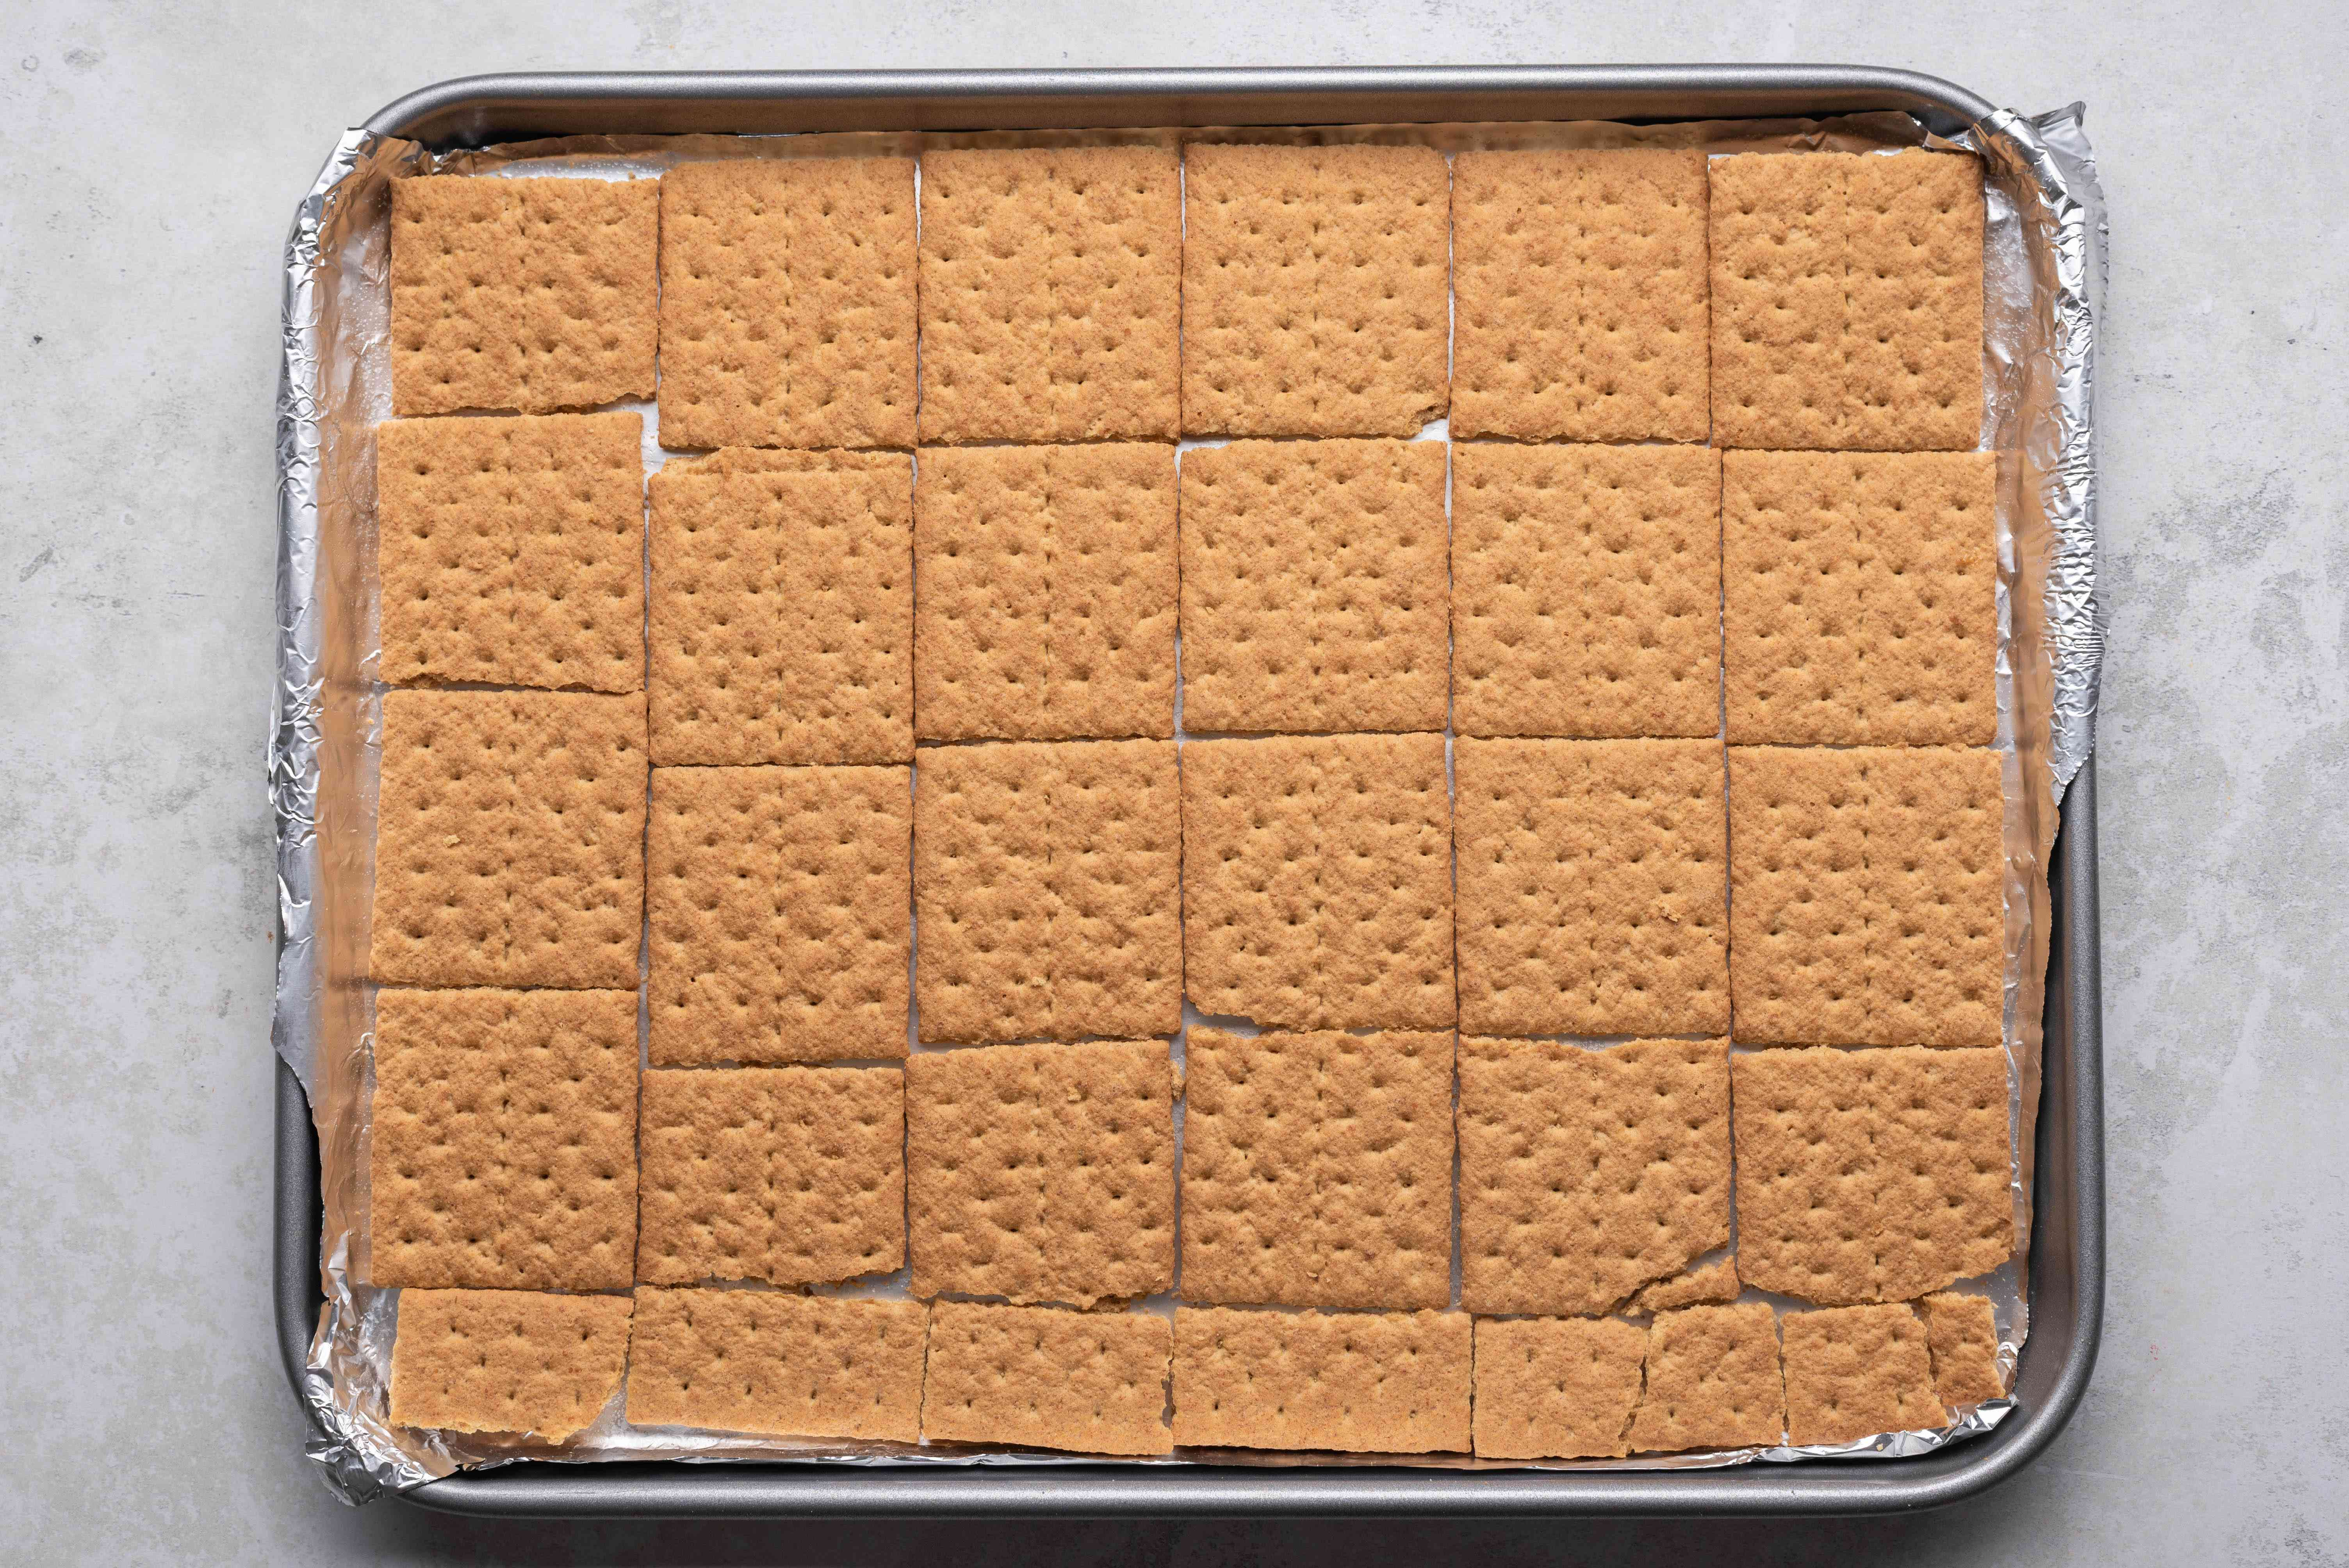 graham crackers in a single layer on the baking sheet